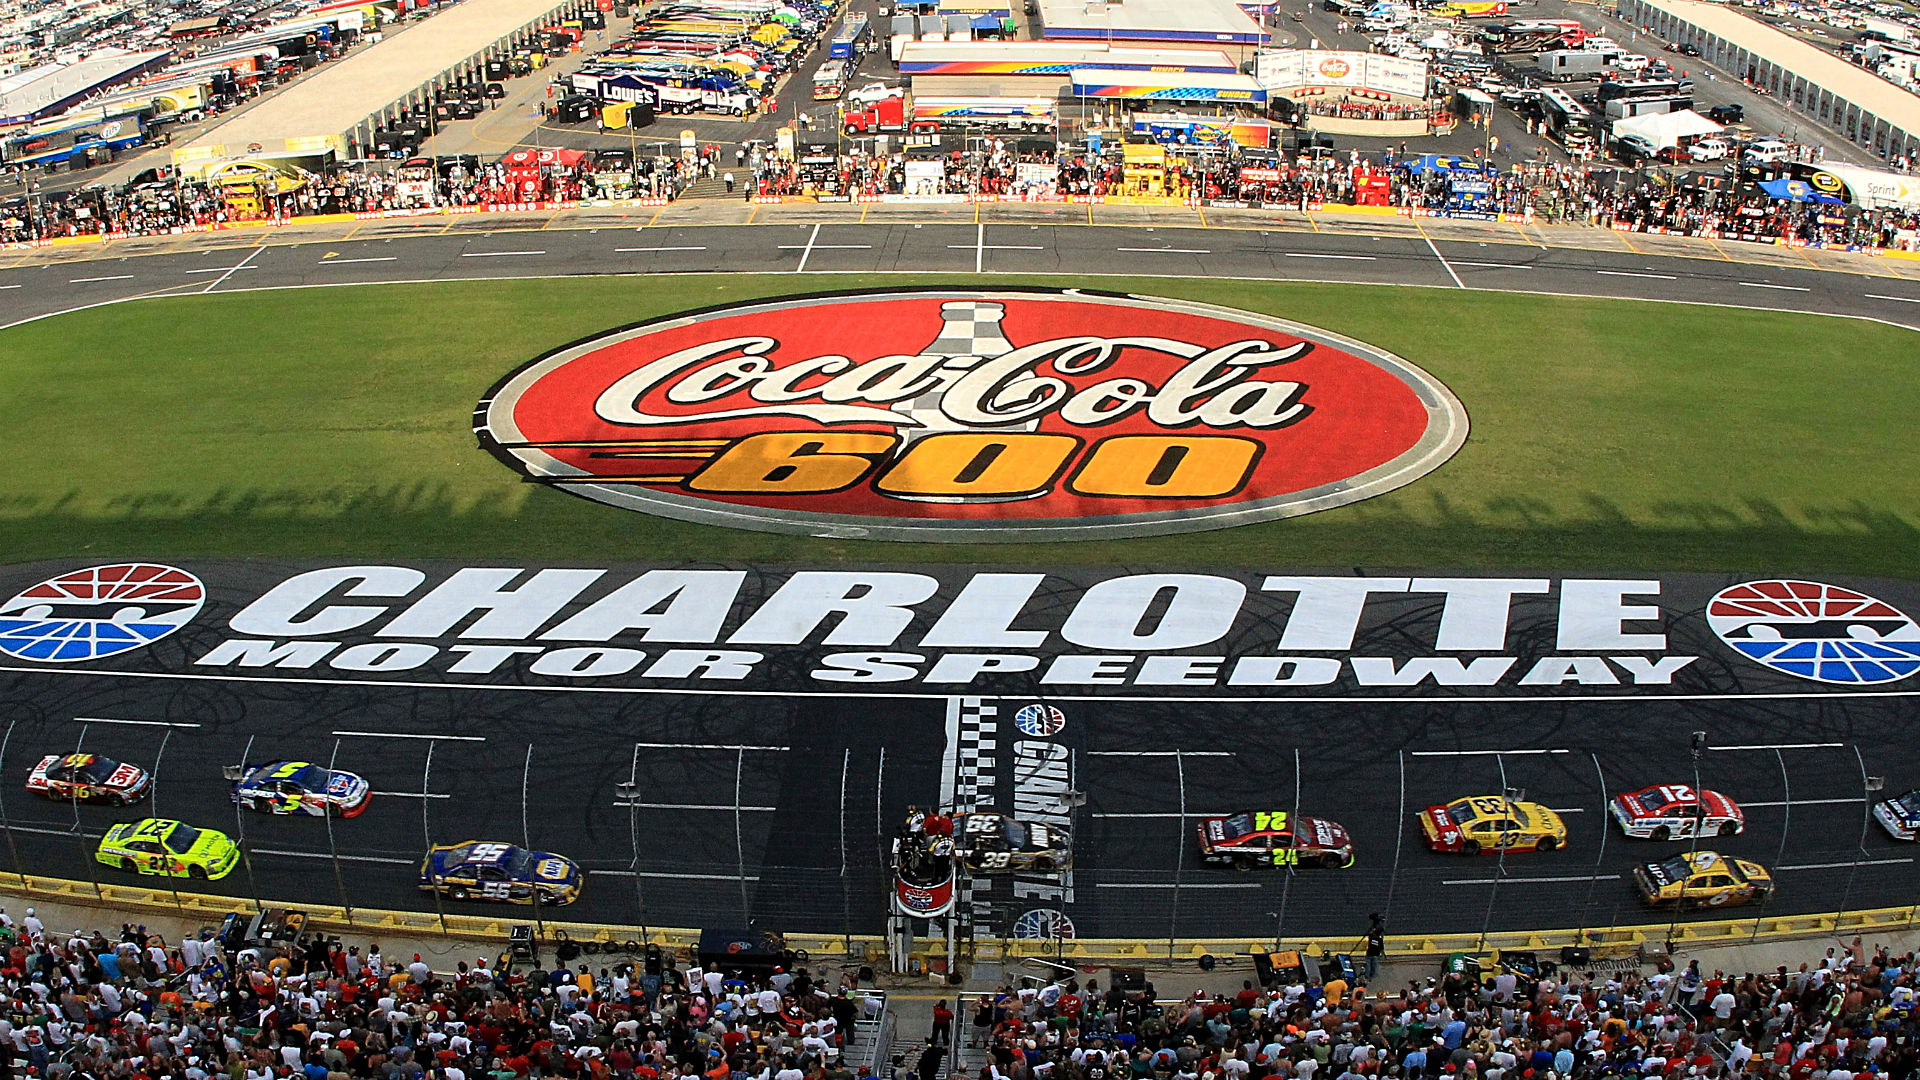 Charlotte Motor Speedway 39 S Facebook Pages Hacked Nascar